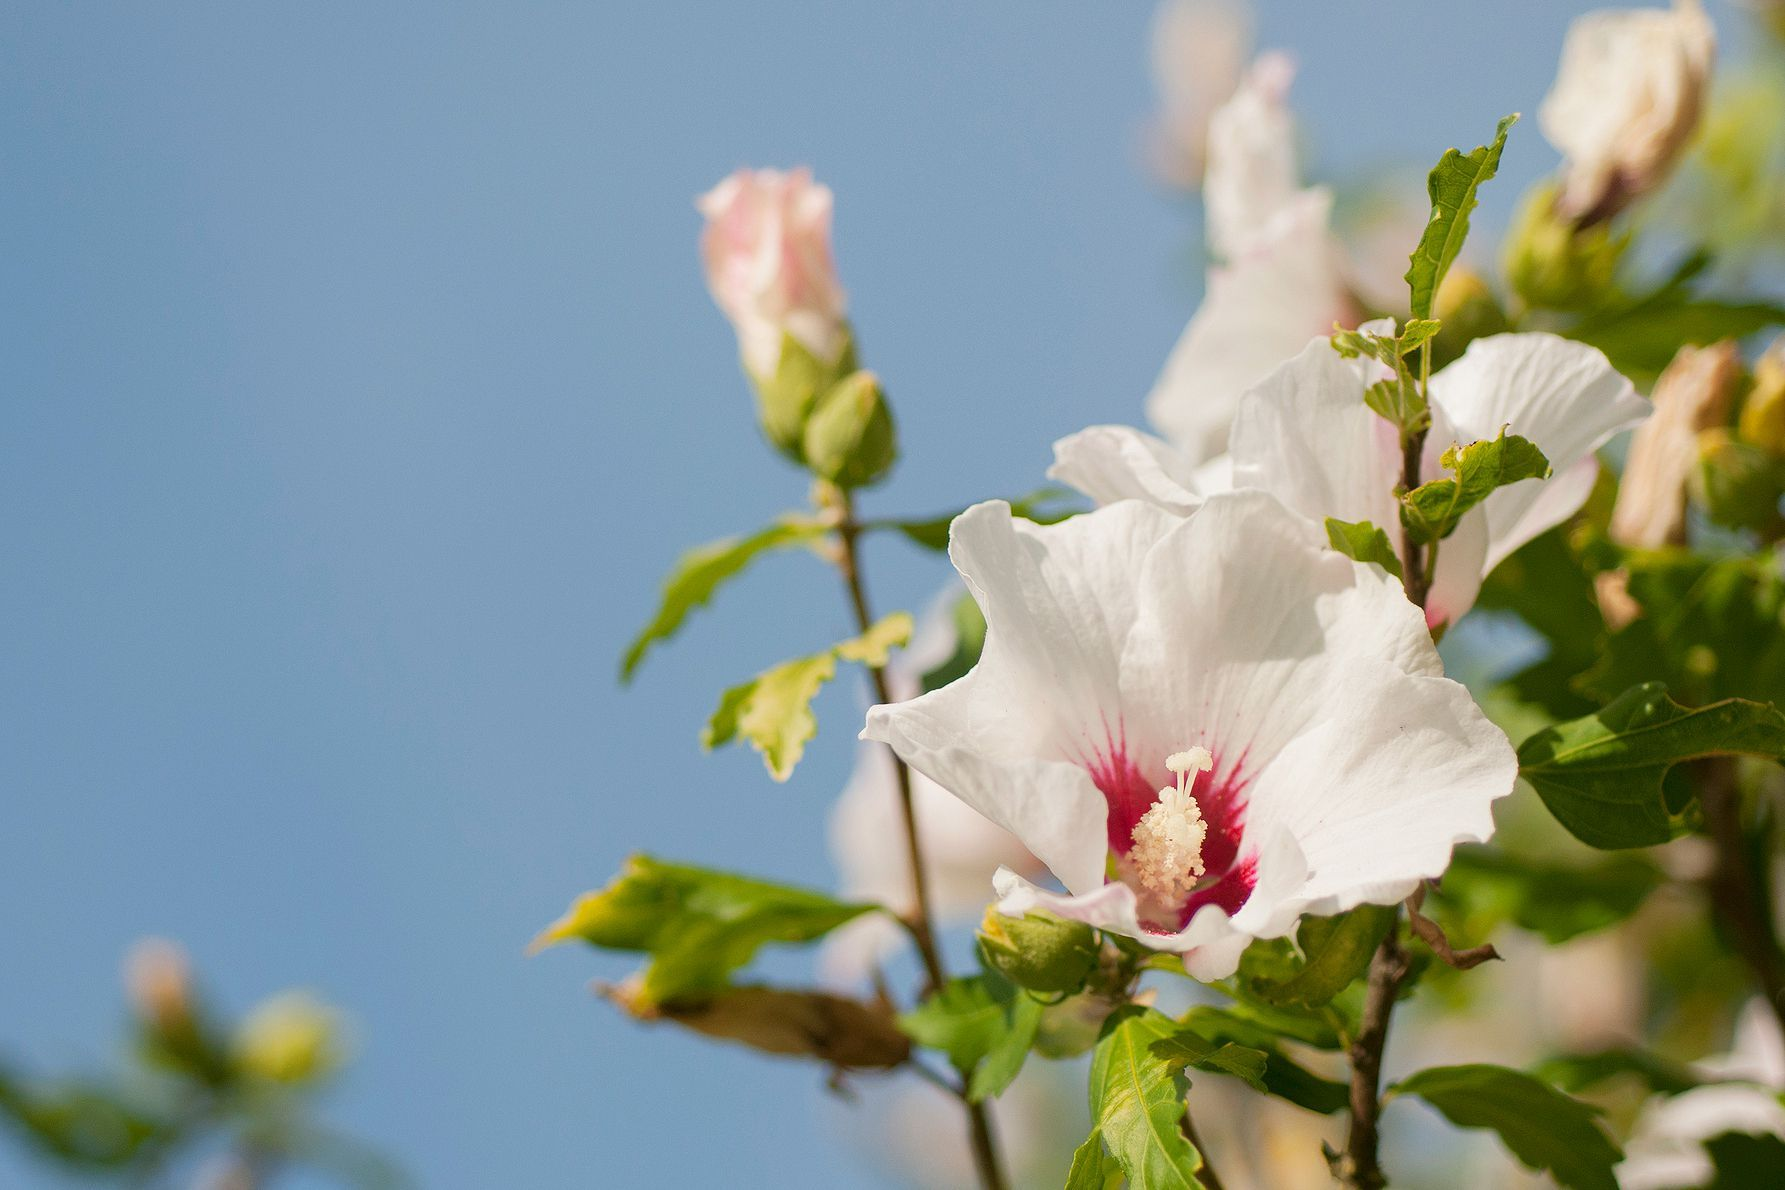 How To Grow And Care For The Flowering Rose Of Sharon Rose Of Sharon Bush Rose Of Sharon Tree Rose Of Sharon